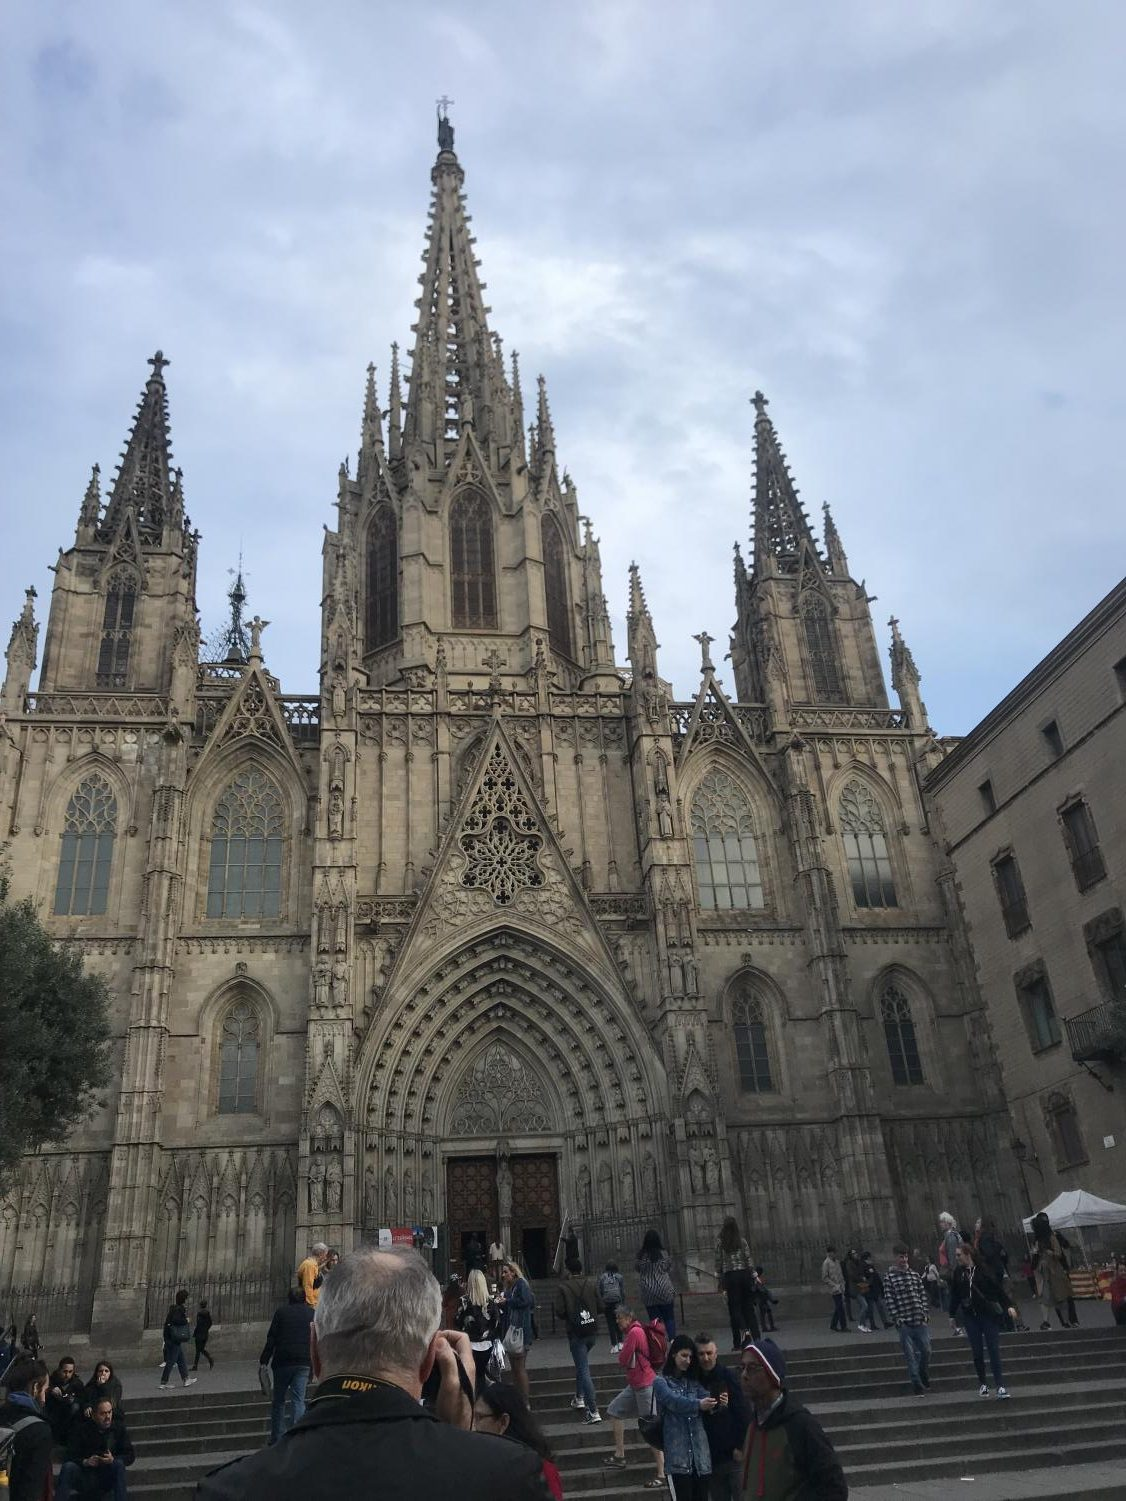 Cathedral of Barcelona. The Catholic church is an important part of Spanish culture which is represented by the architecture found in the country. Traveling to different regions allows one to broaden their cultural perspective.